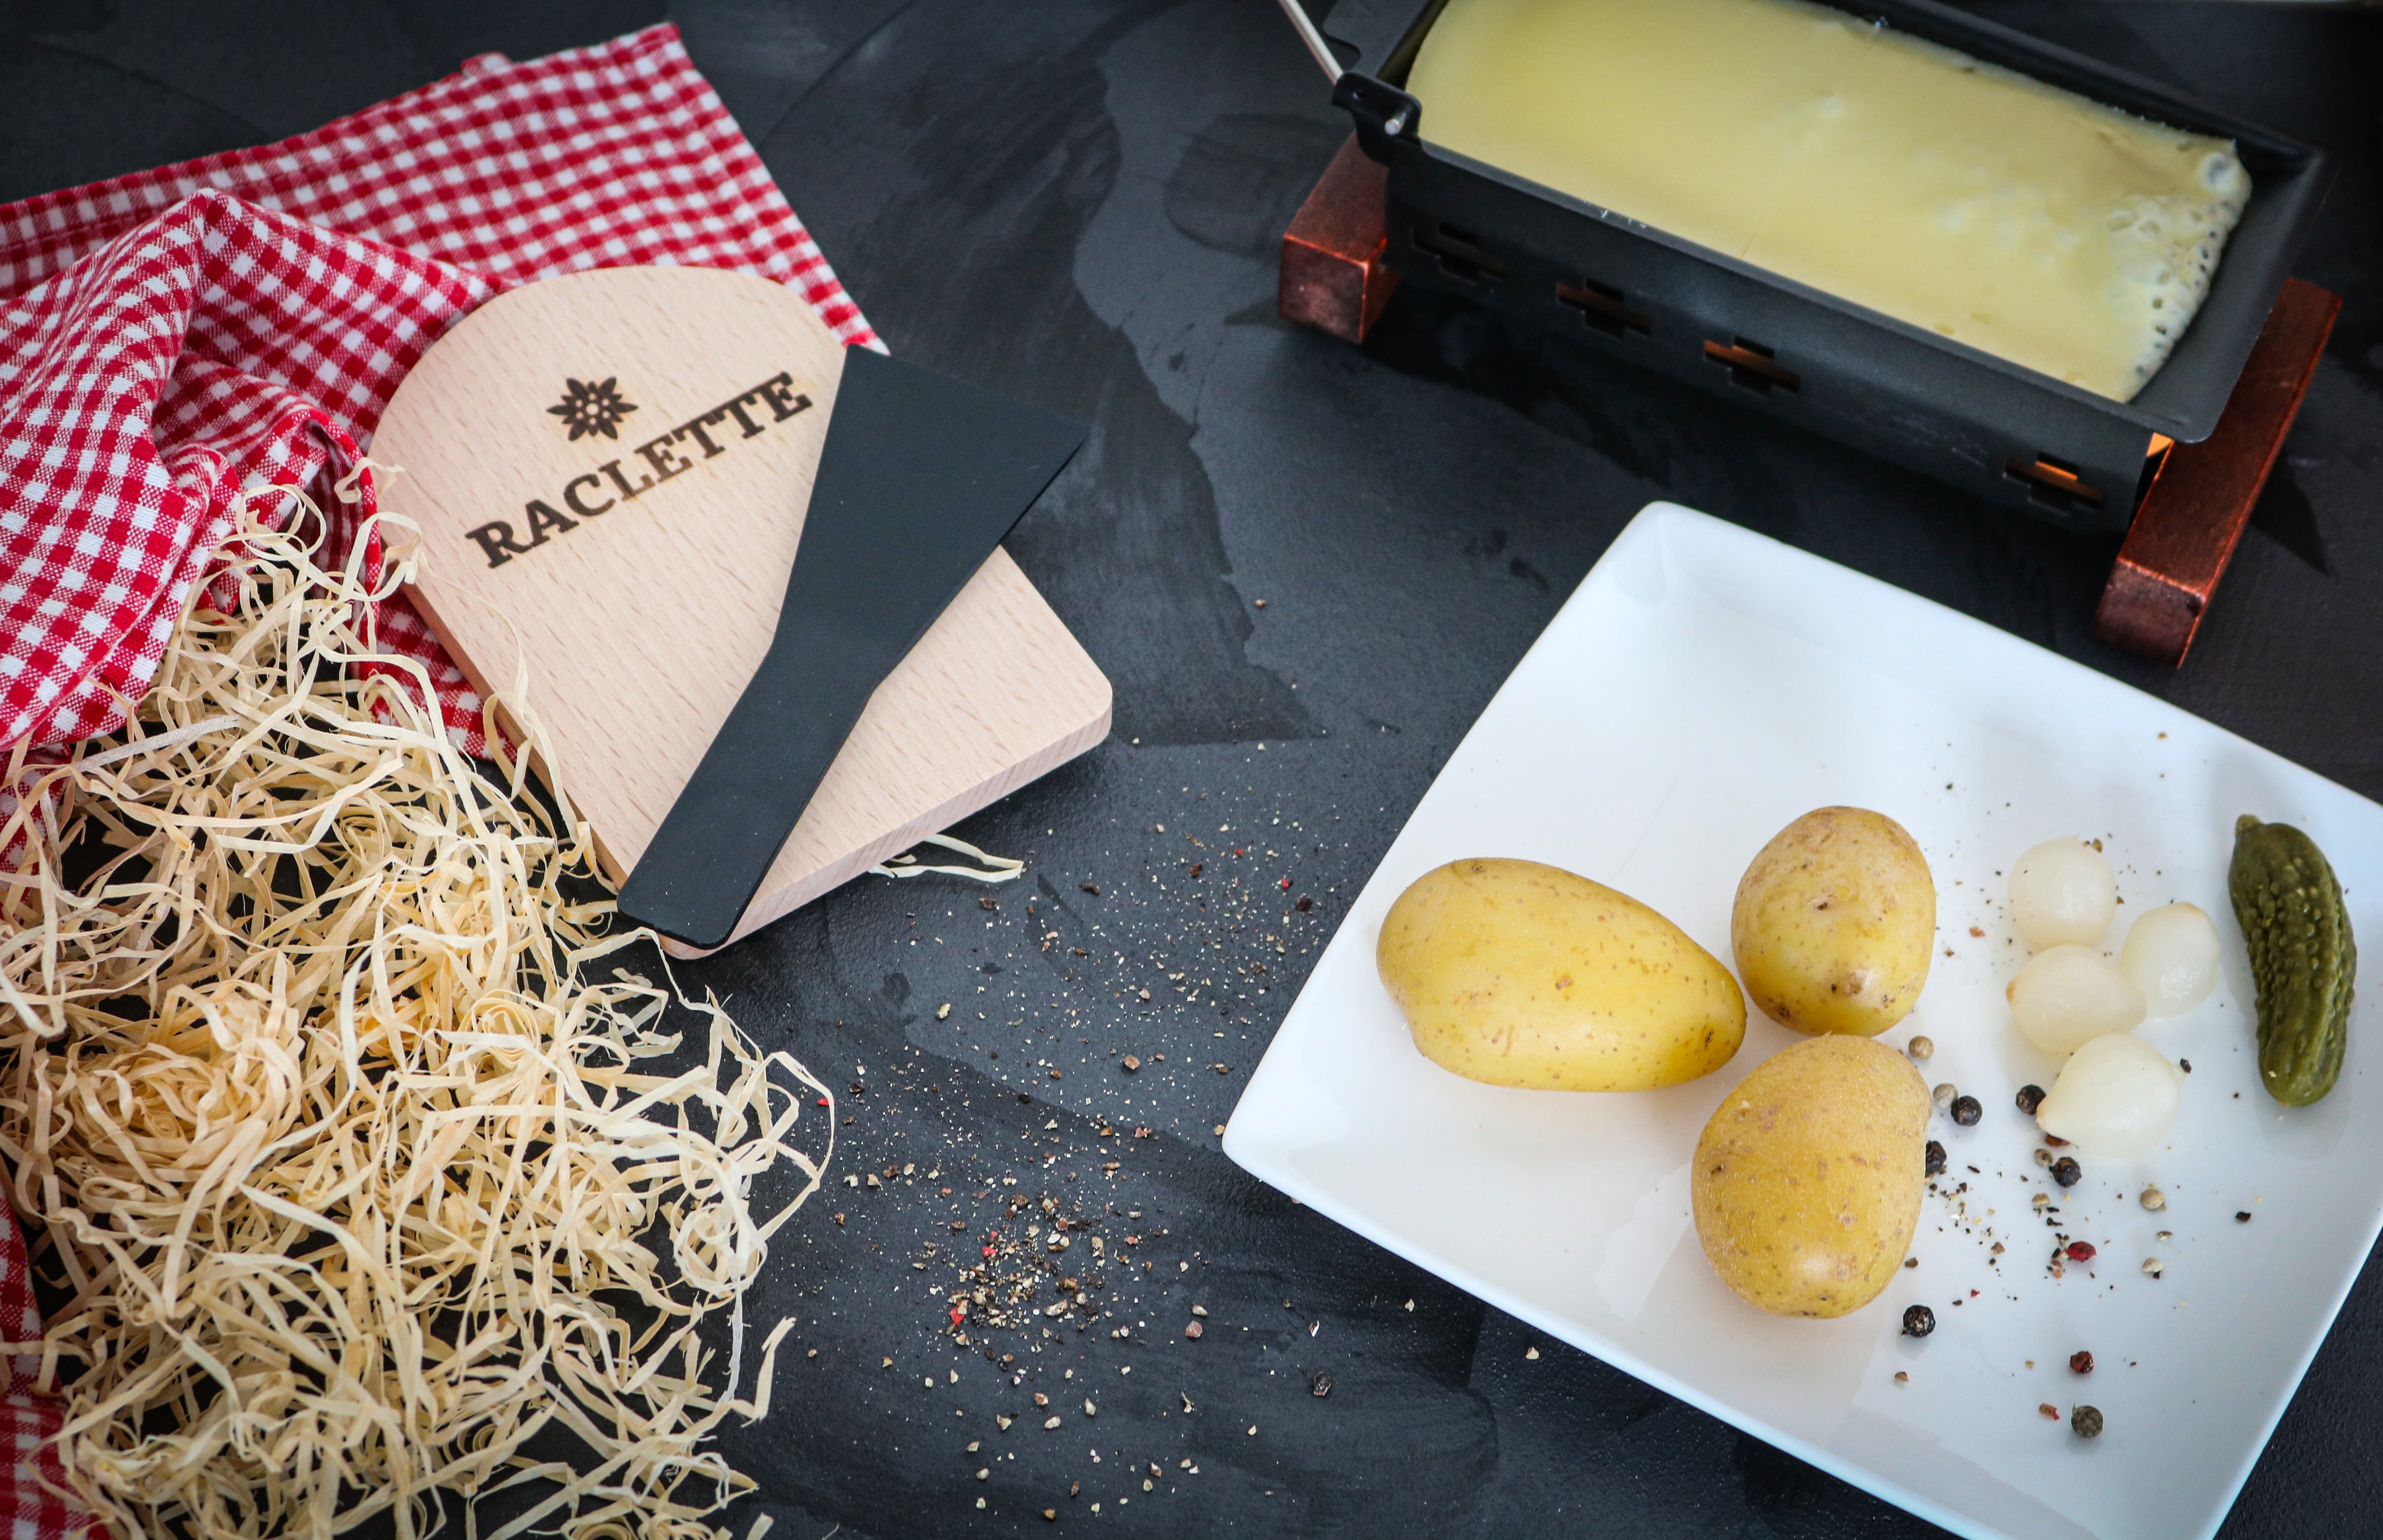 Raclette-Abend